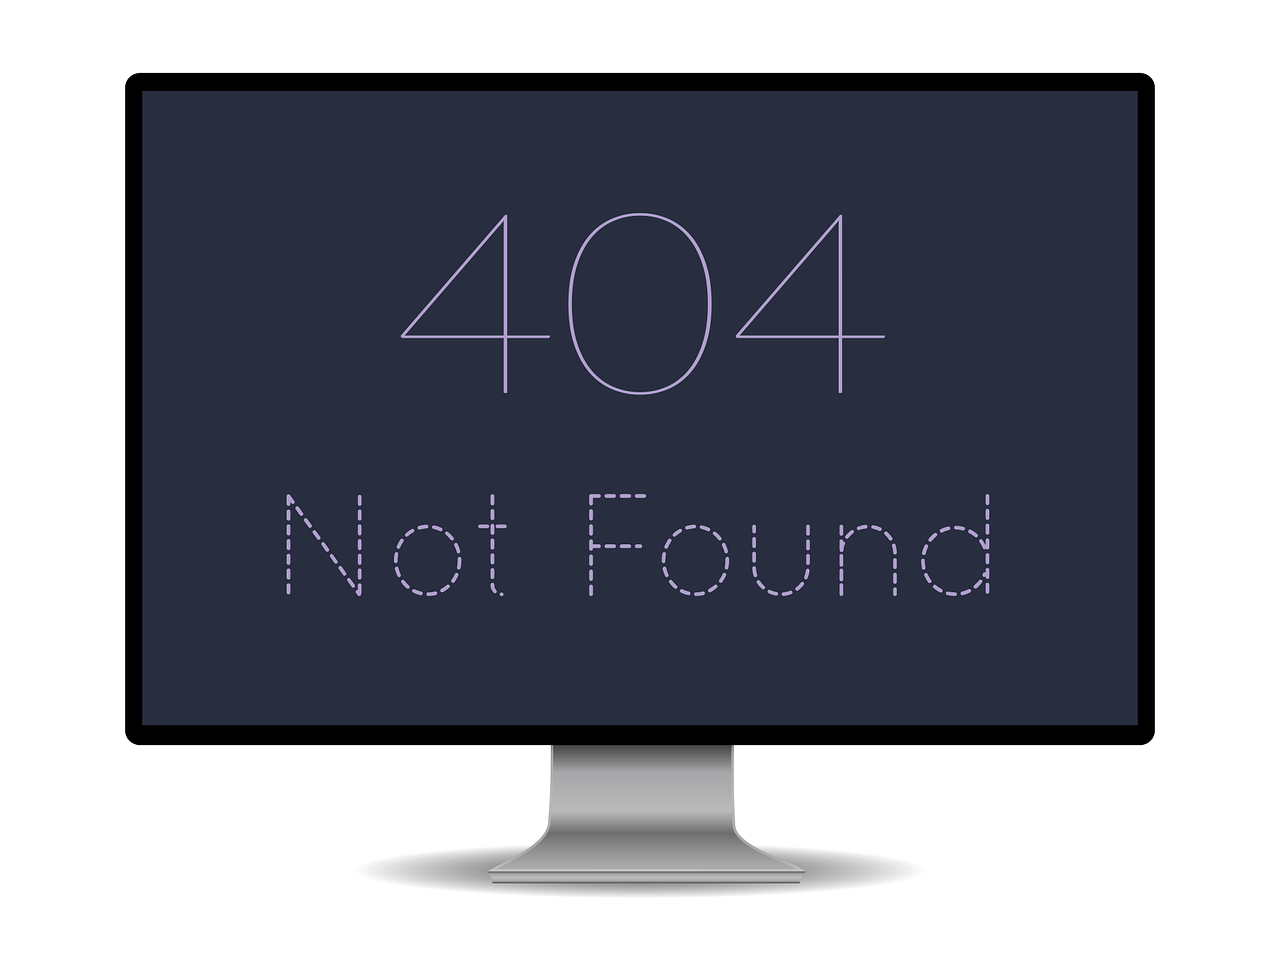 Eliminating 404 errors eliminates the risk of having your page de-listed